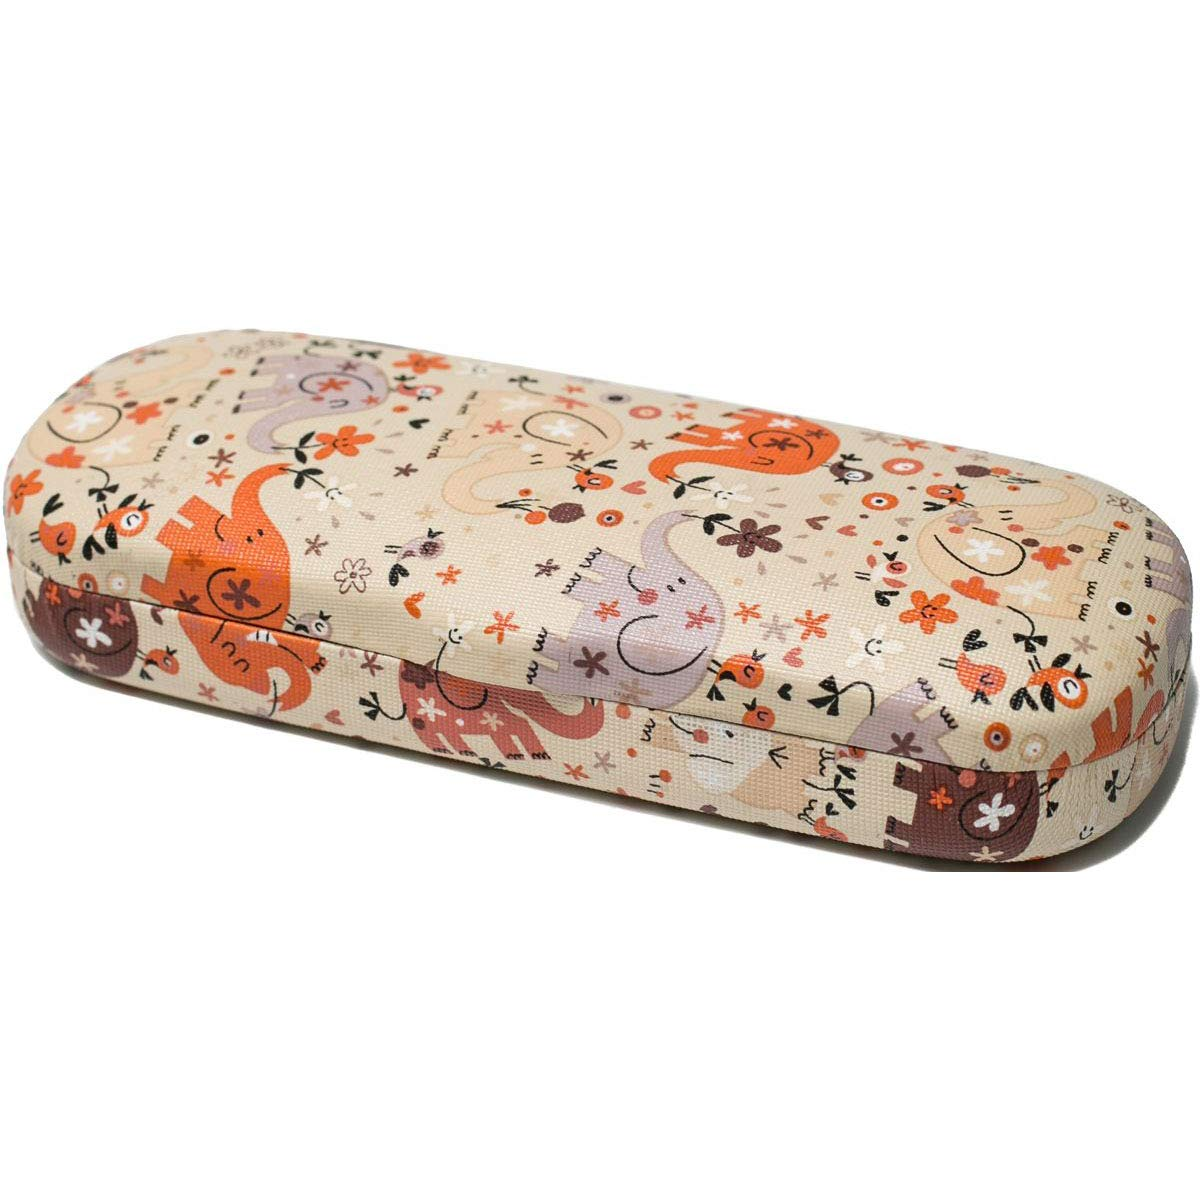 Handmade Russian Eyeglass case for a boy, beige with a color print, on a solid basis, covered with artificial leather by RuPost